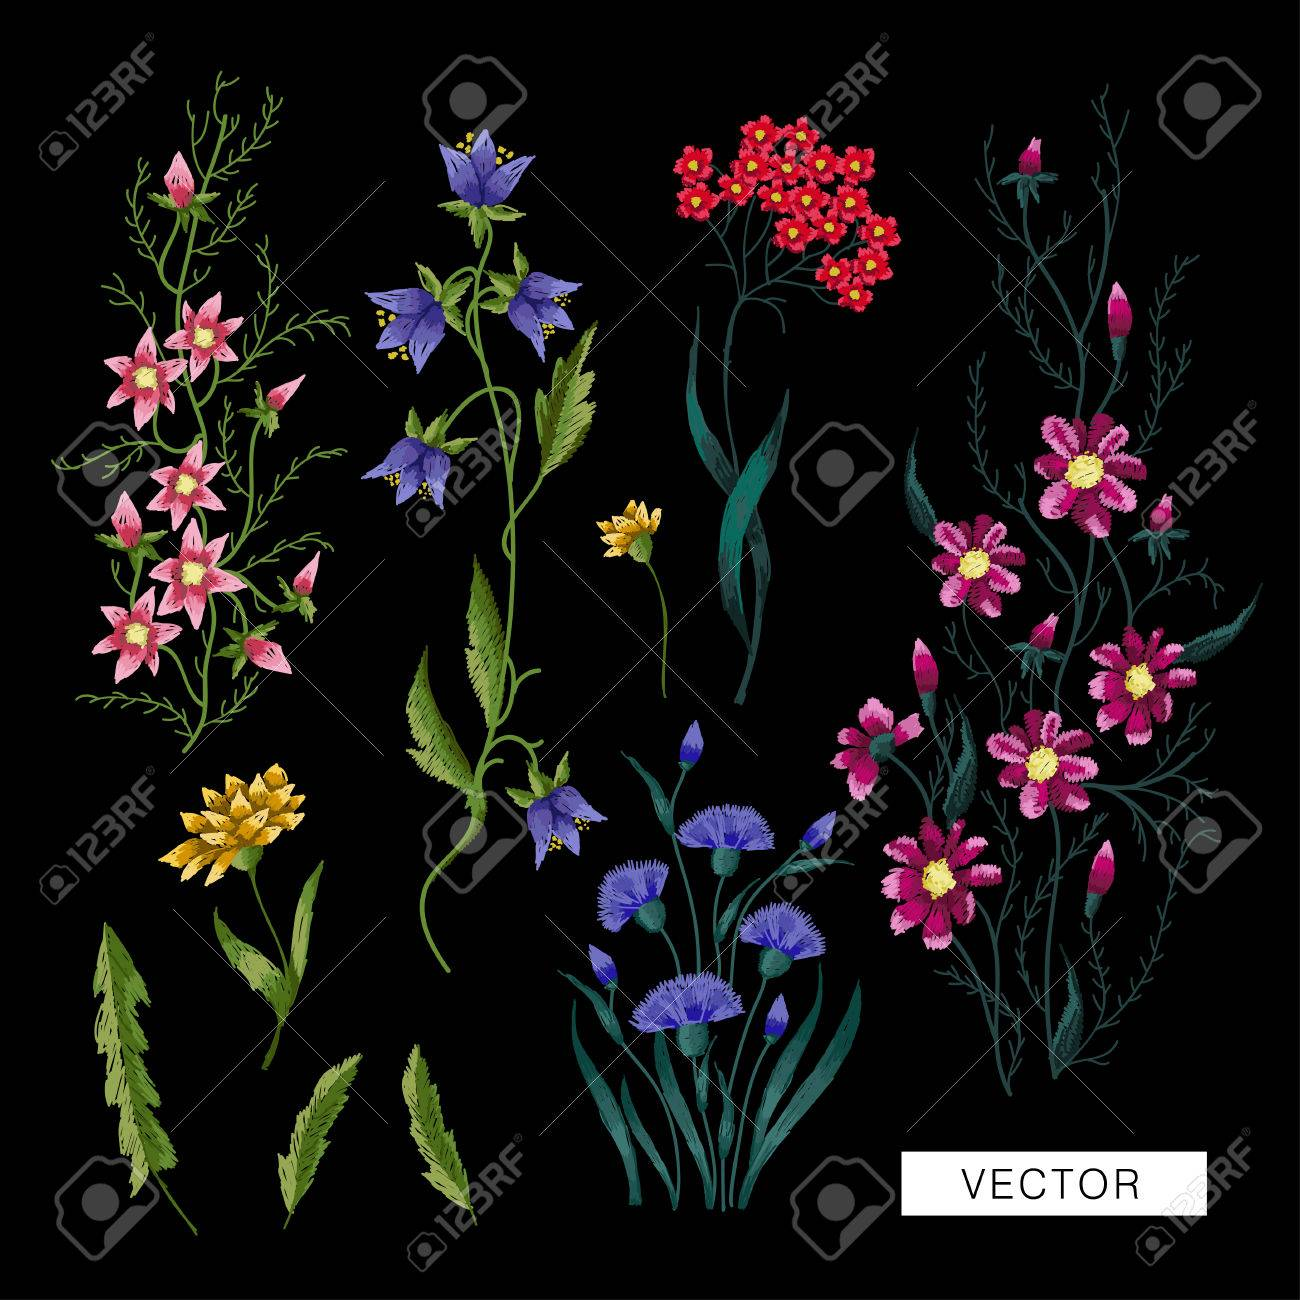 Embroidery Flowers Embroidered Design Elements With Flowers Royalty Free Cliparts Vectors And Stock Illustration Image 75567572